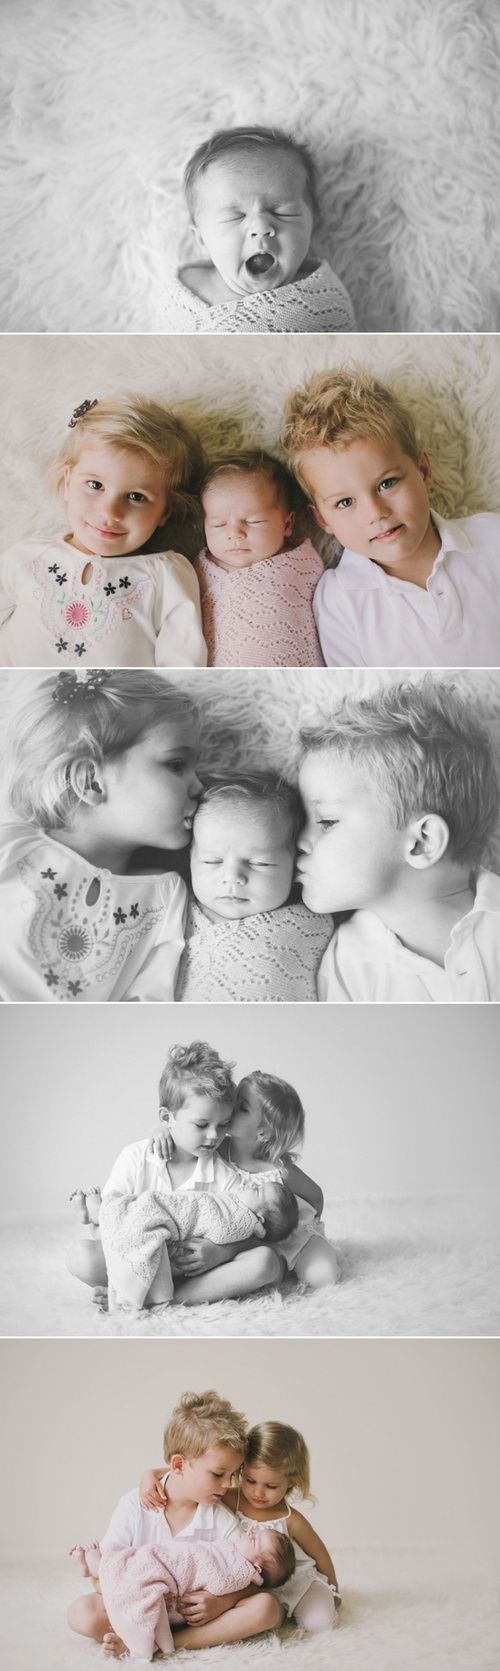 AW! this makes me wish I would've had a third baby :(